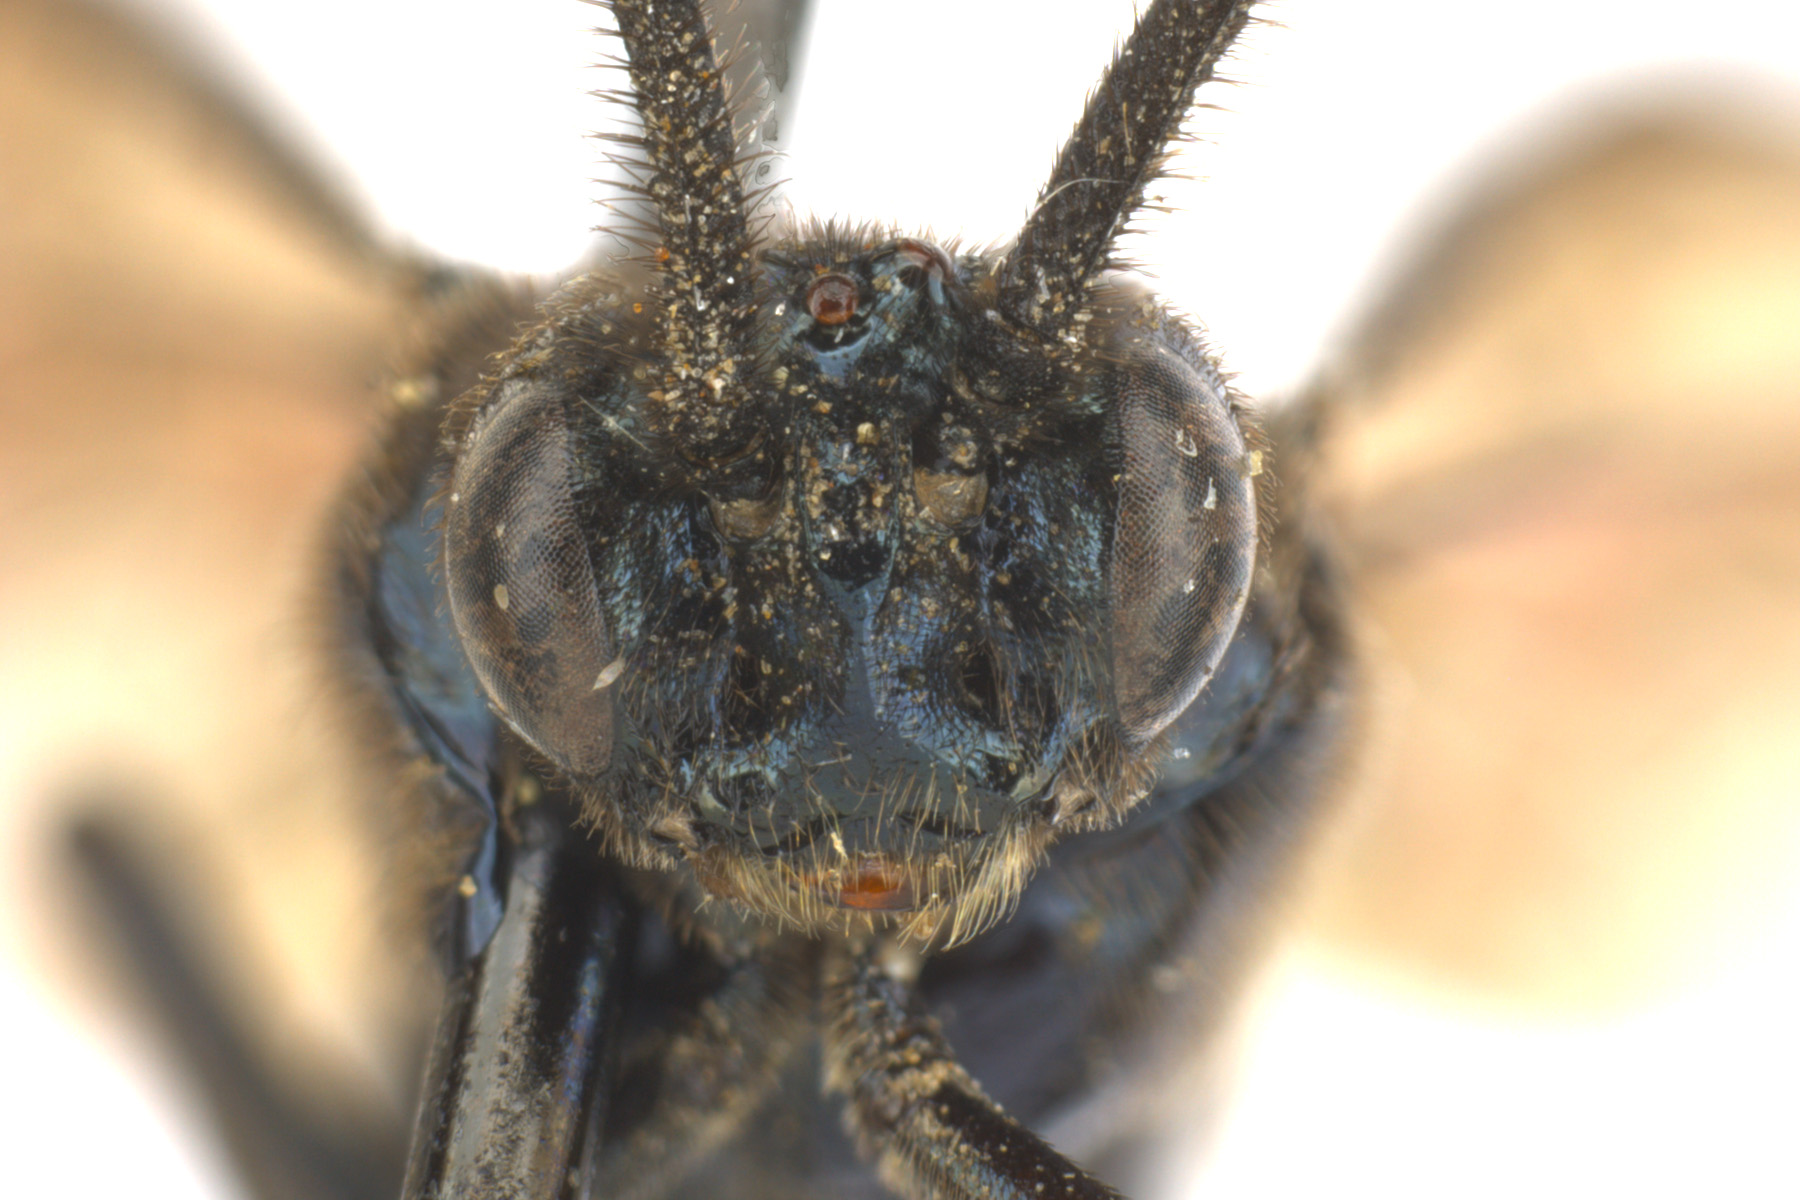 <em>Arge</em> sp. male face; photo by J. Orr, WSDA